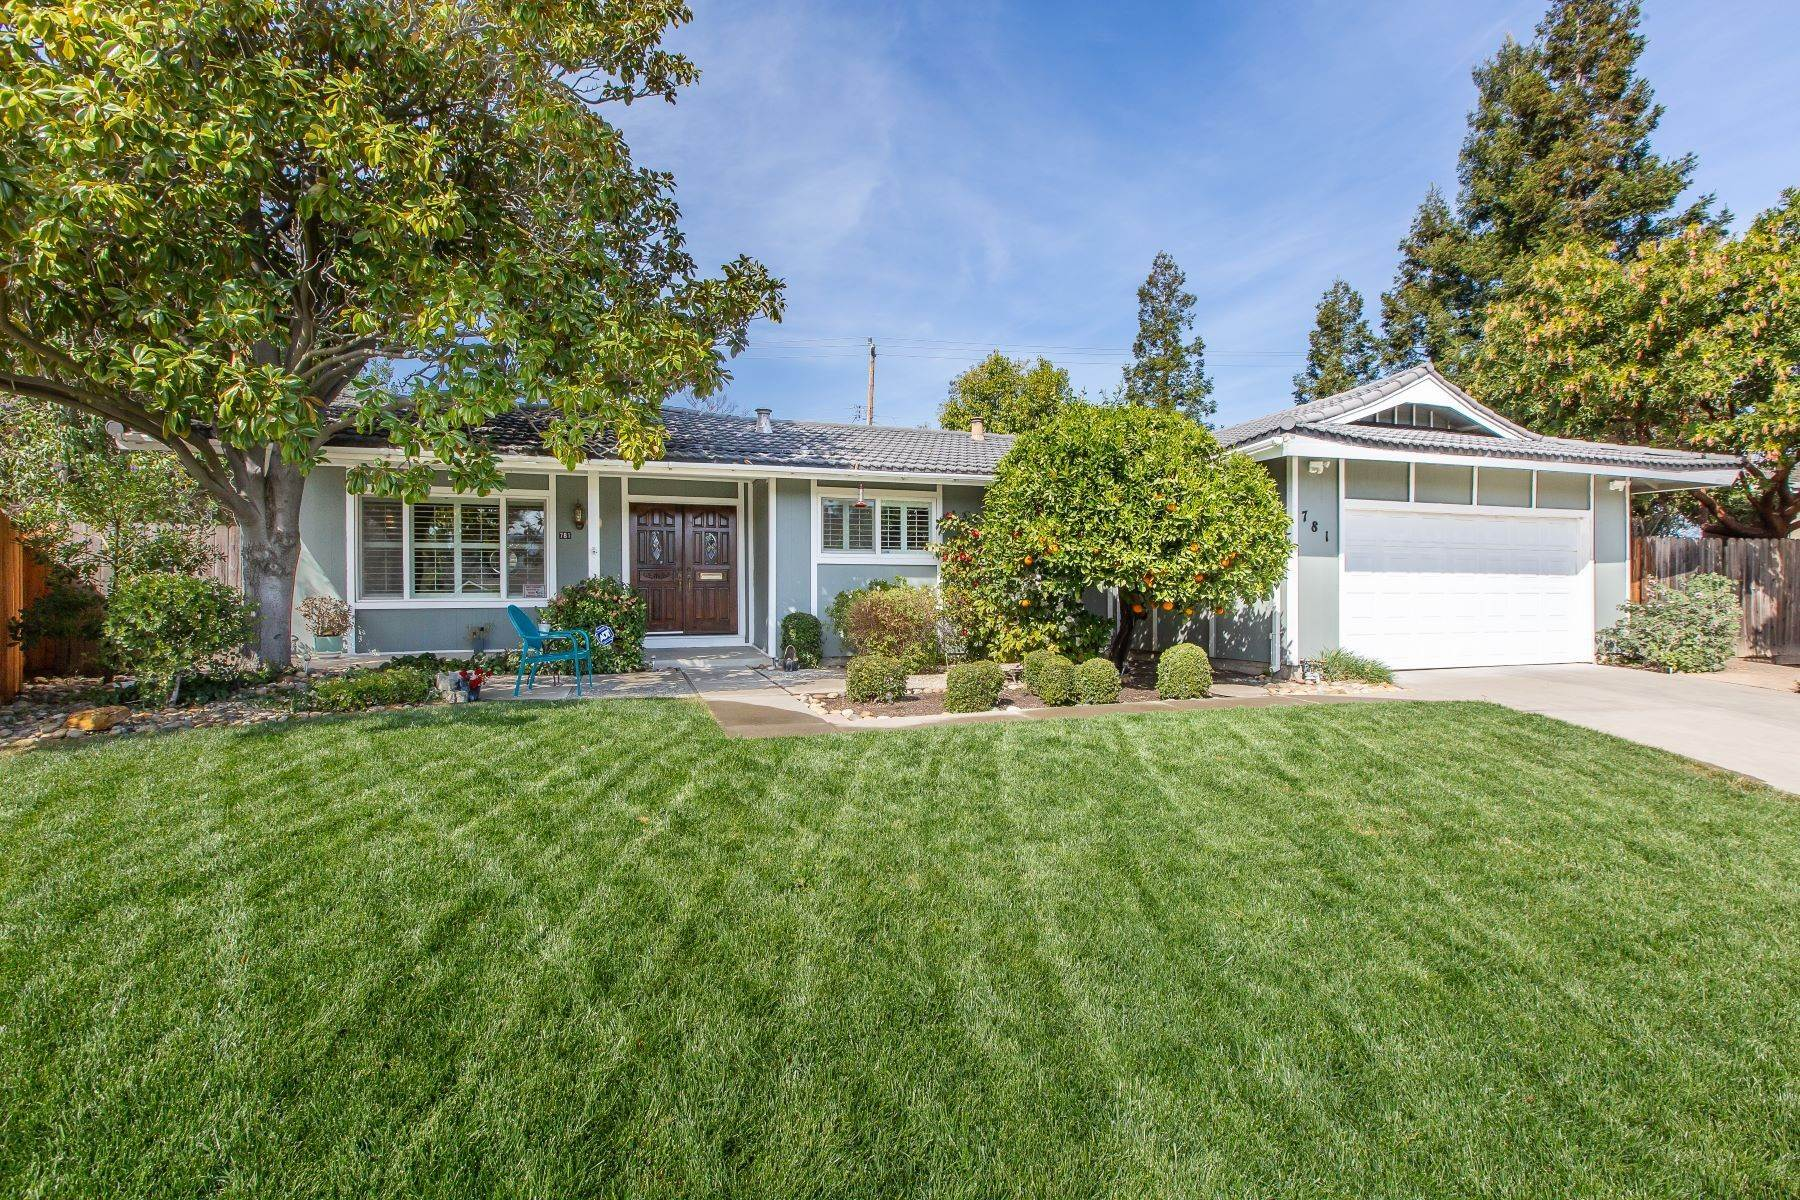 Single Family Homes for Sale at Bountiful 781 Berkshire Place 781 Berkshire Place Concord, California 94518 United States